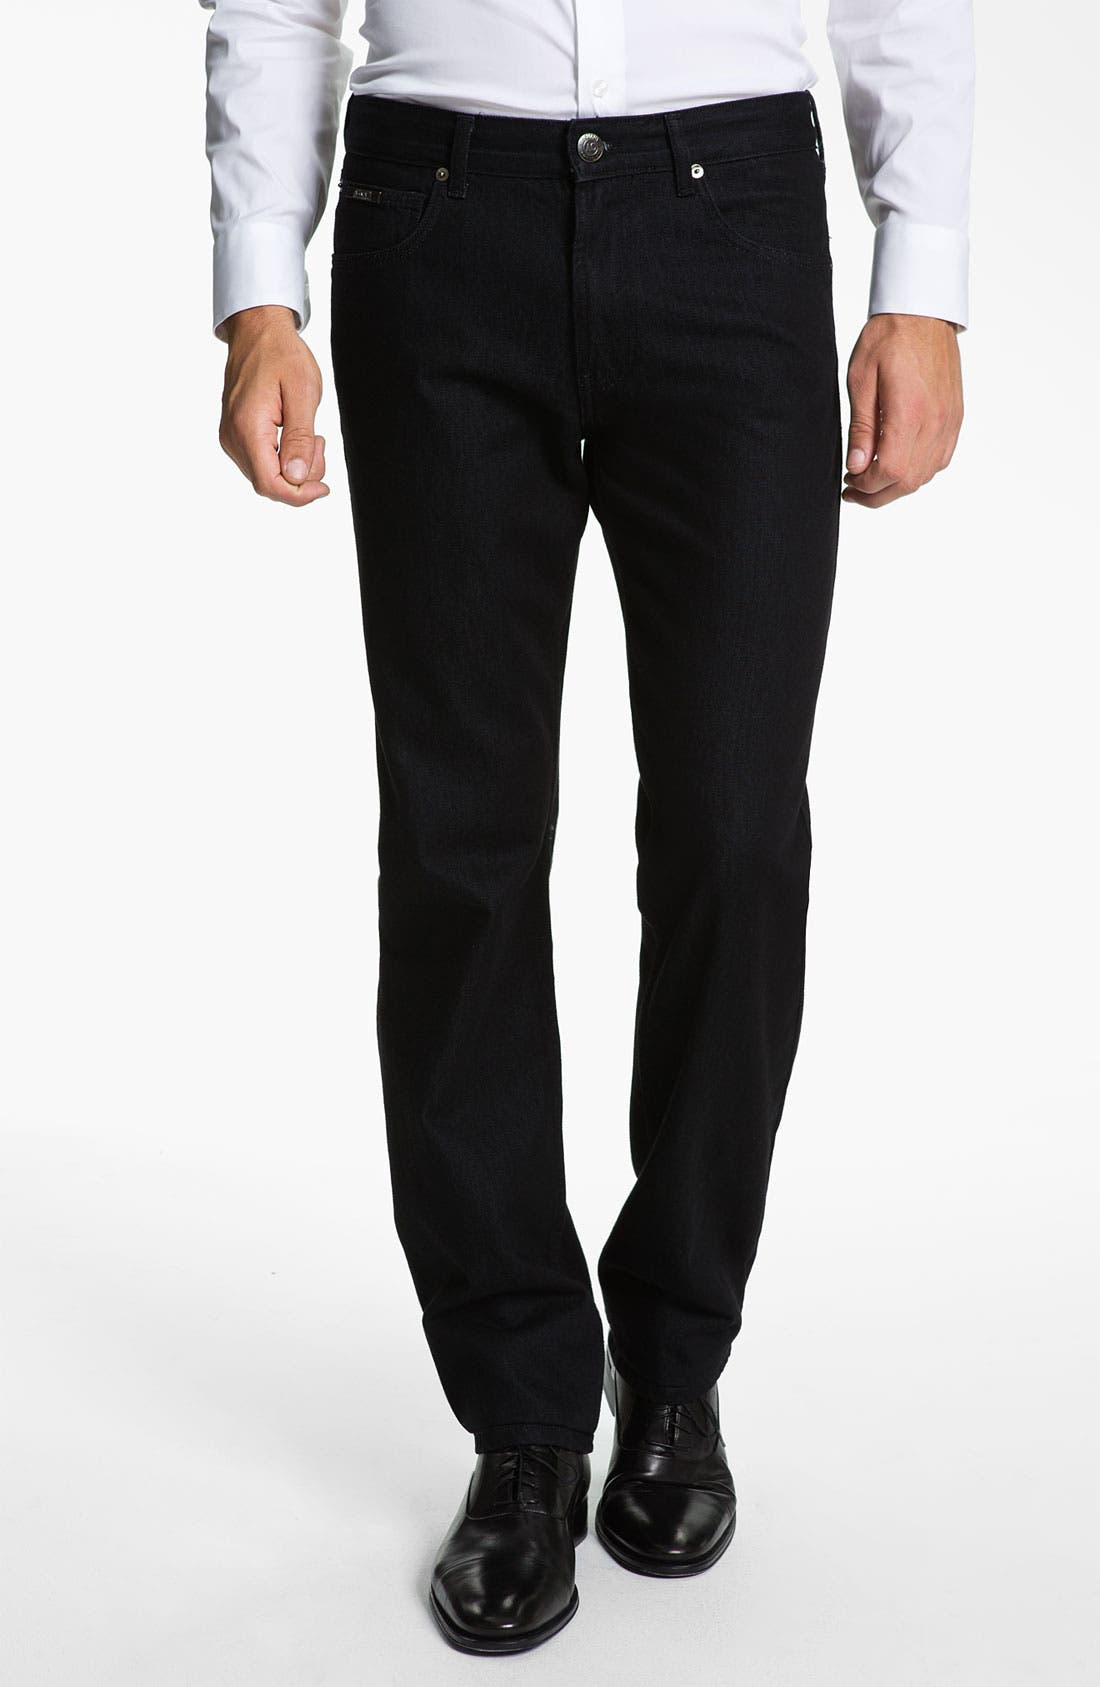 Alternate Image 1 Selected - Armani Collezioni Straight Leg Jeans (Black Wash)